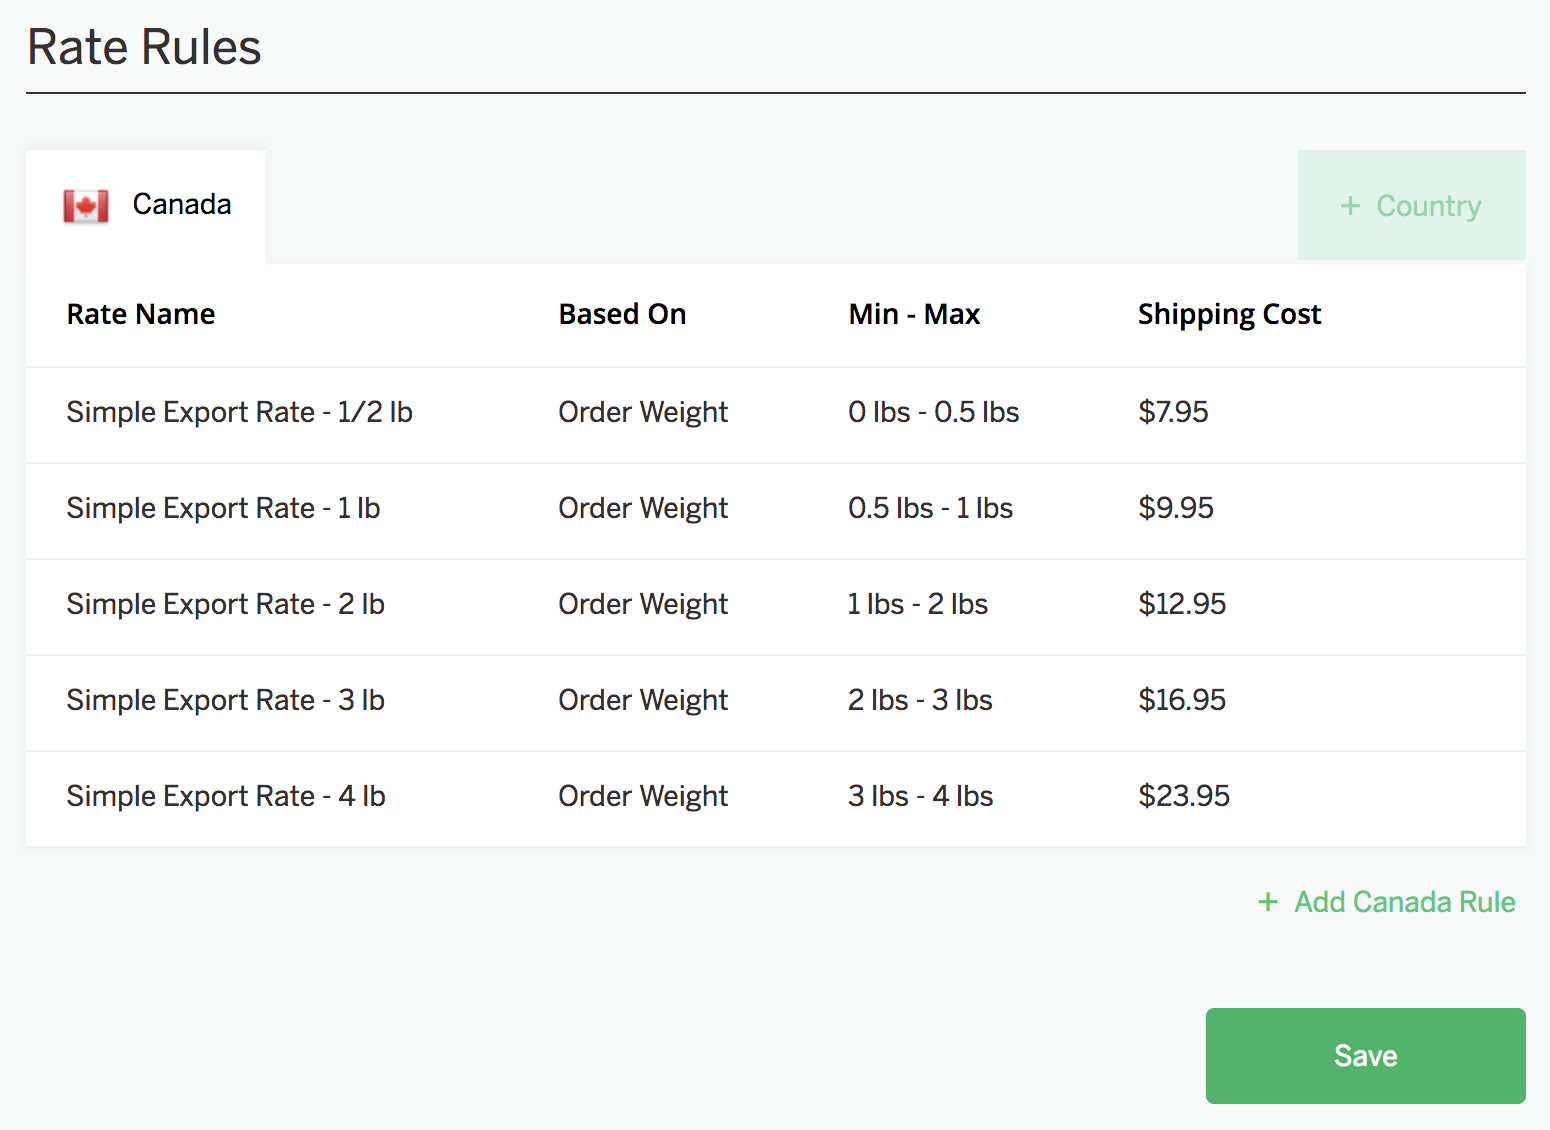 A screenshot showing all of the rate rules for Simple Export Rate for the country of Canada.